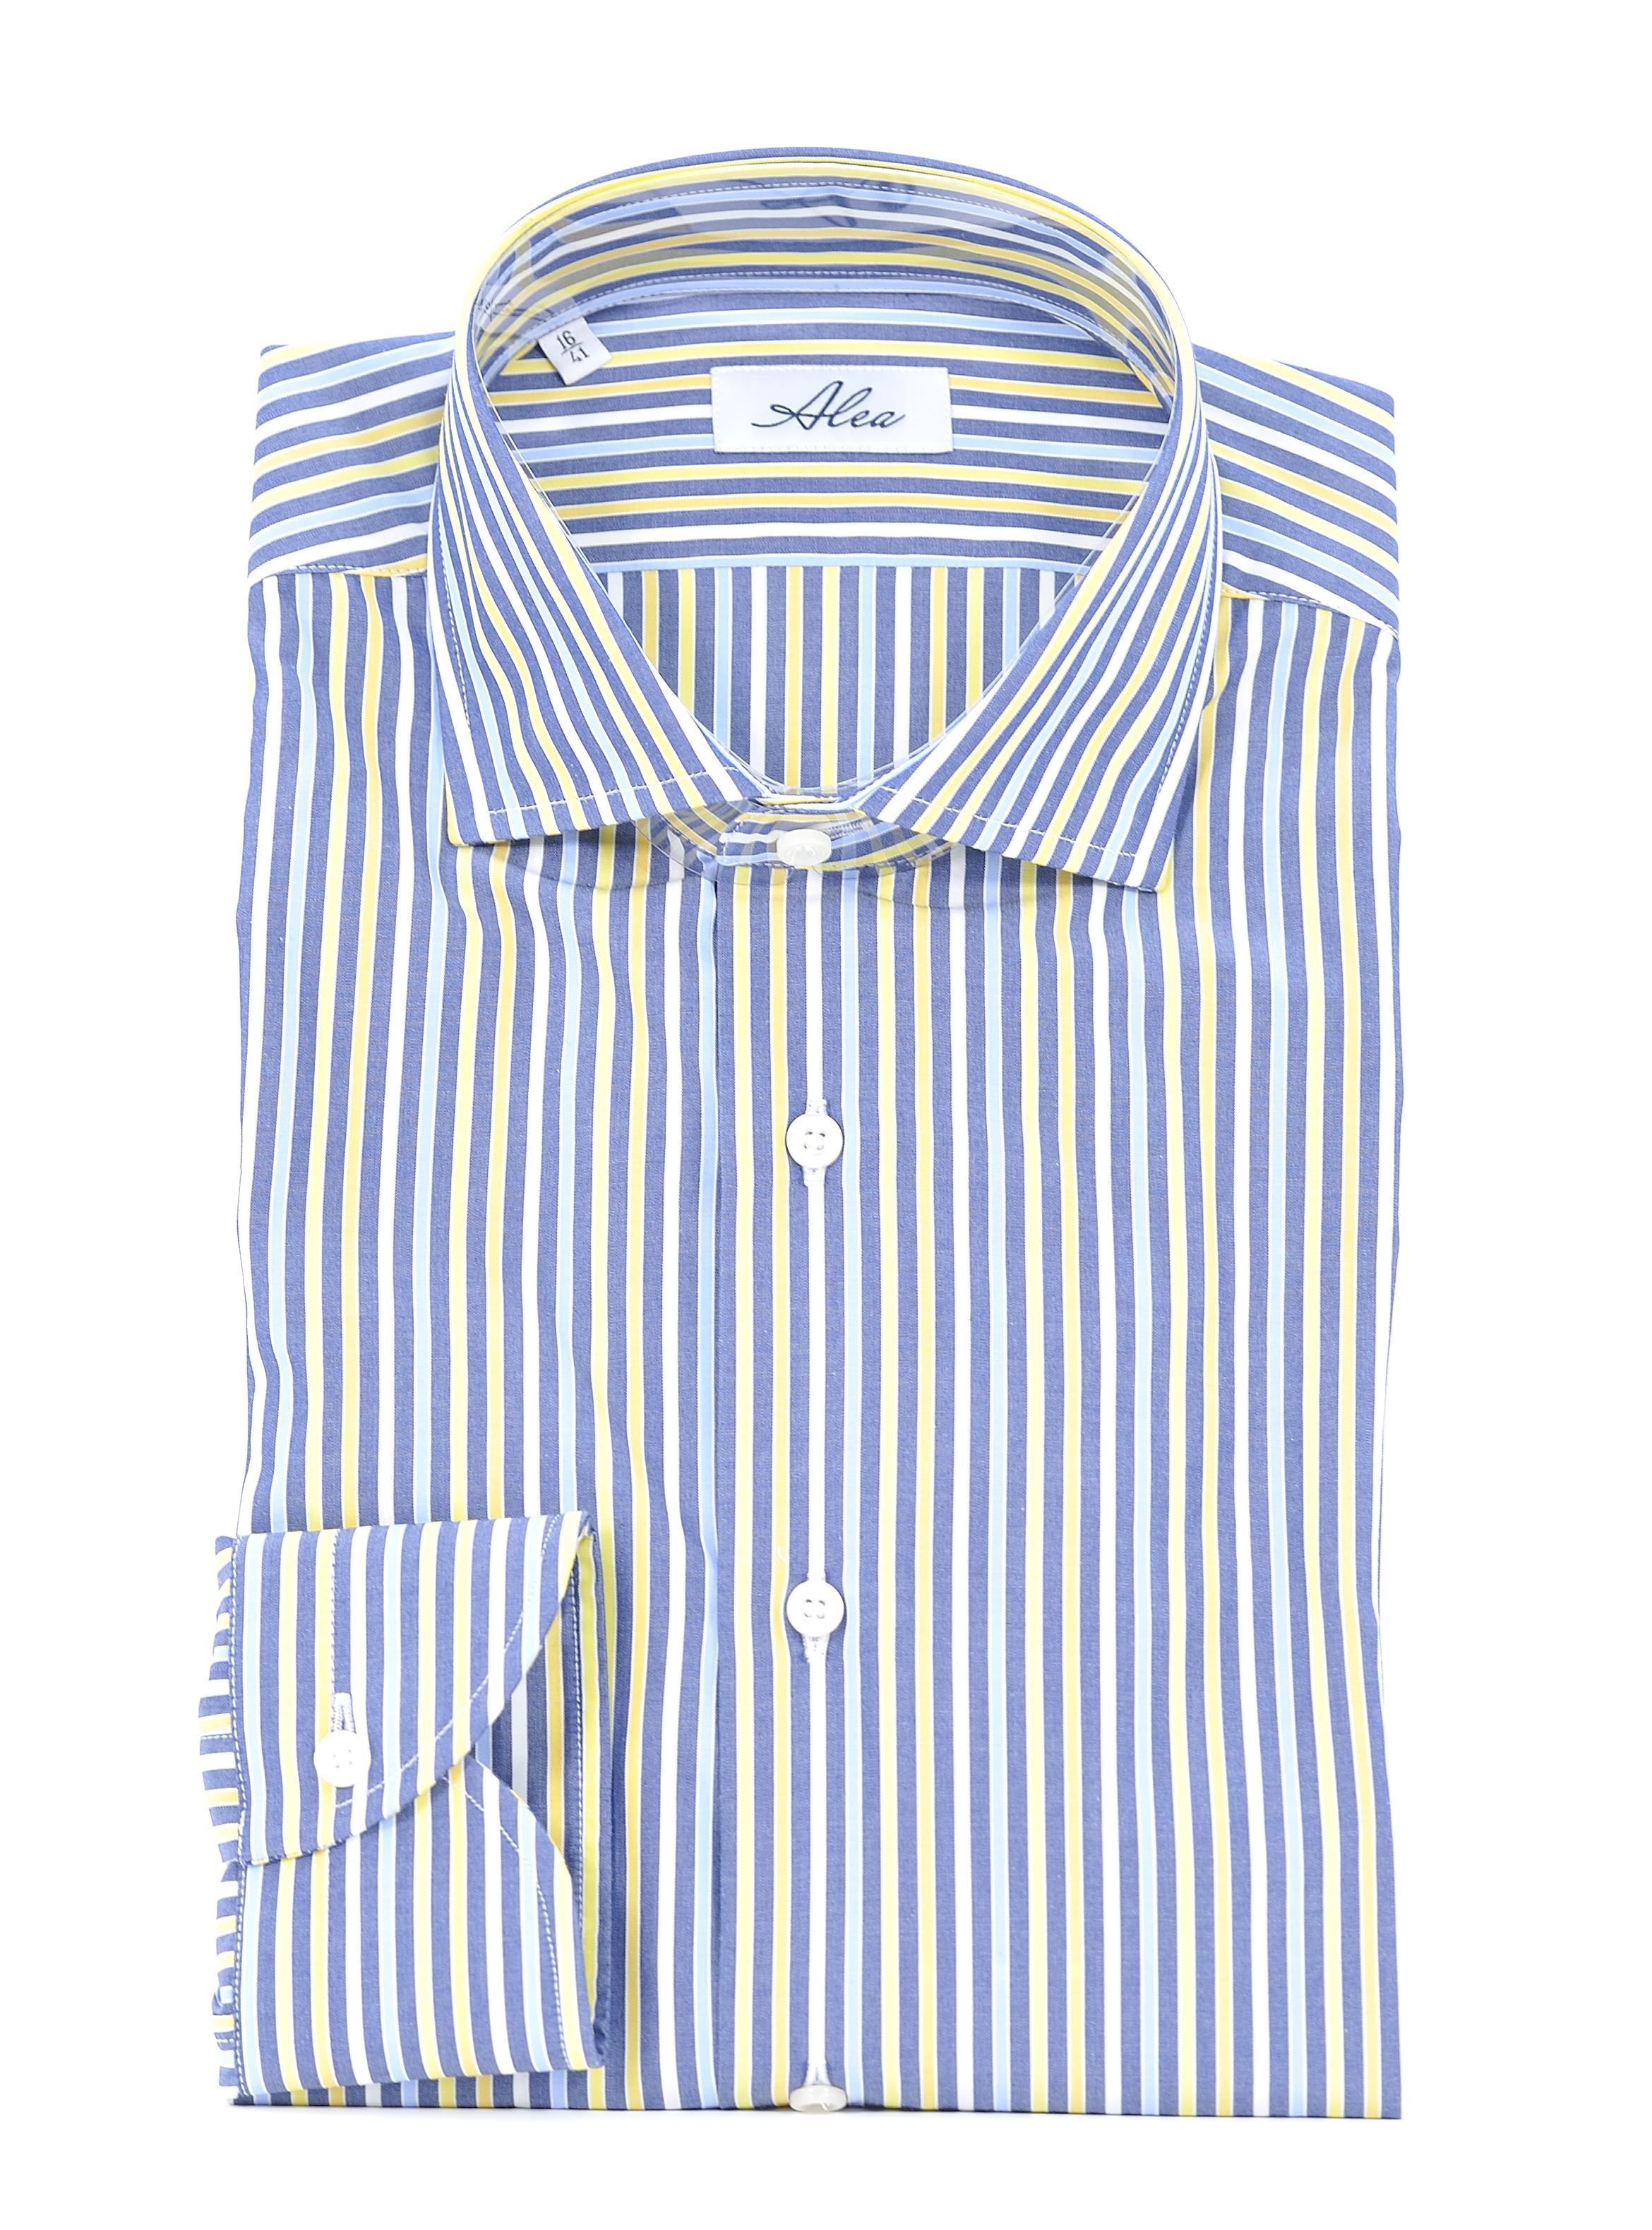 Picture of Longsleeved shirt with a light-blue background